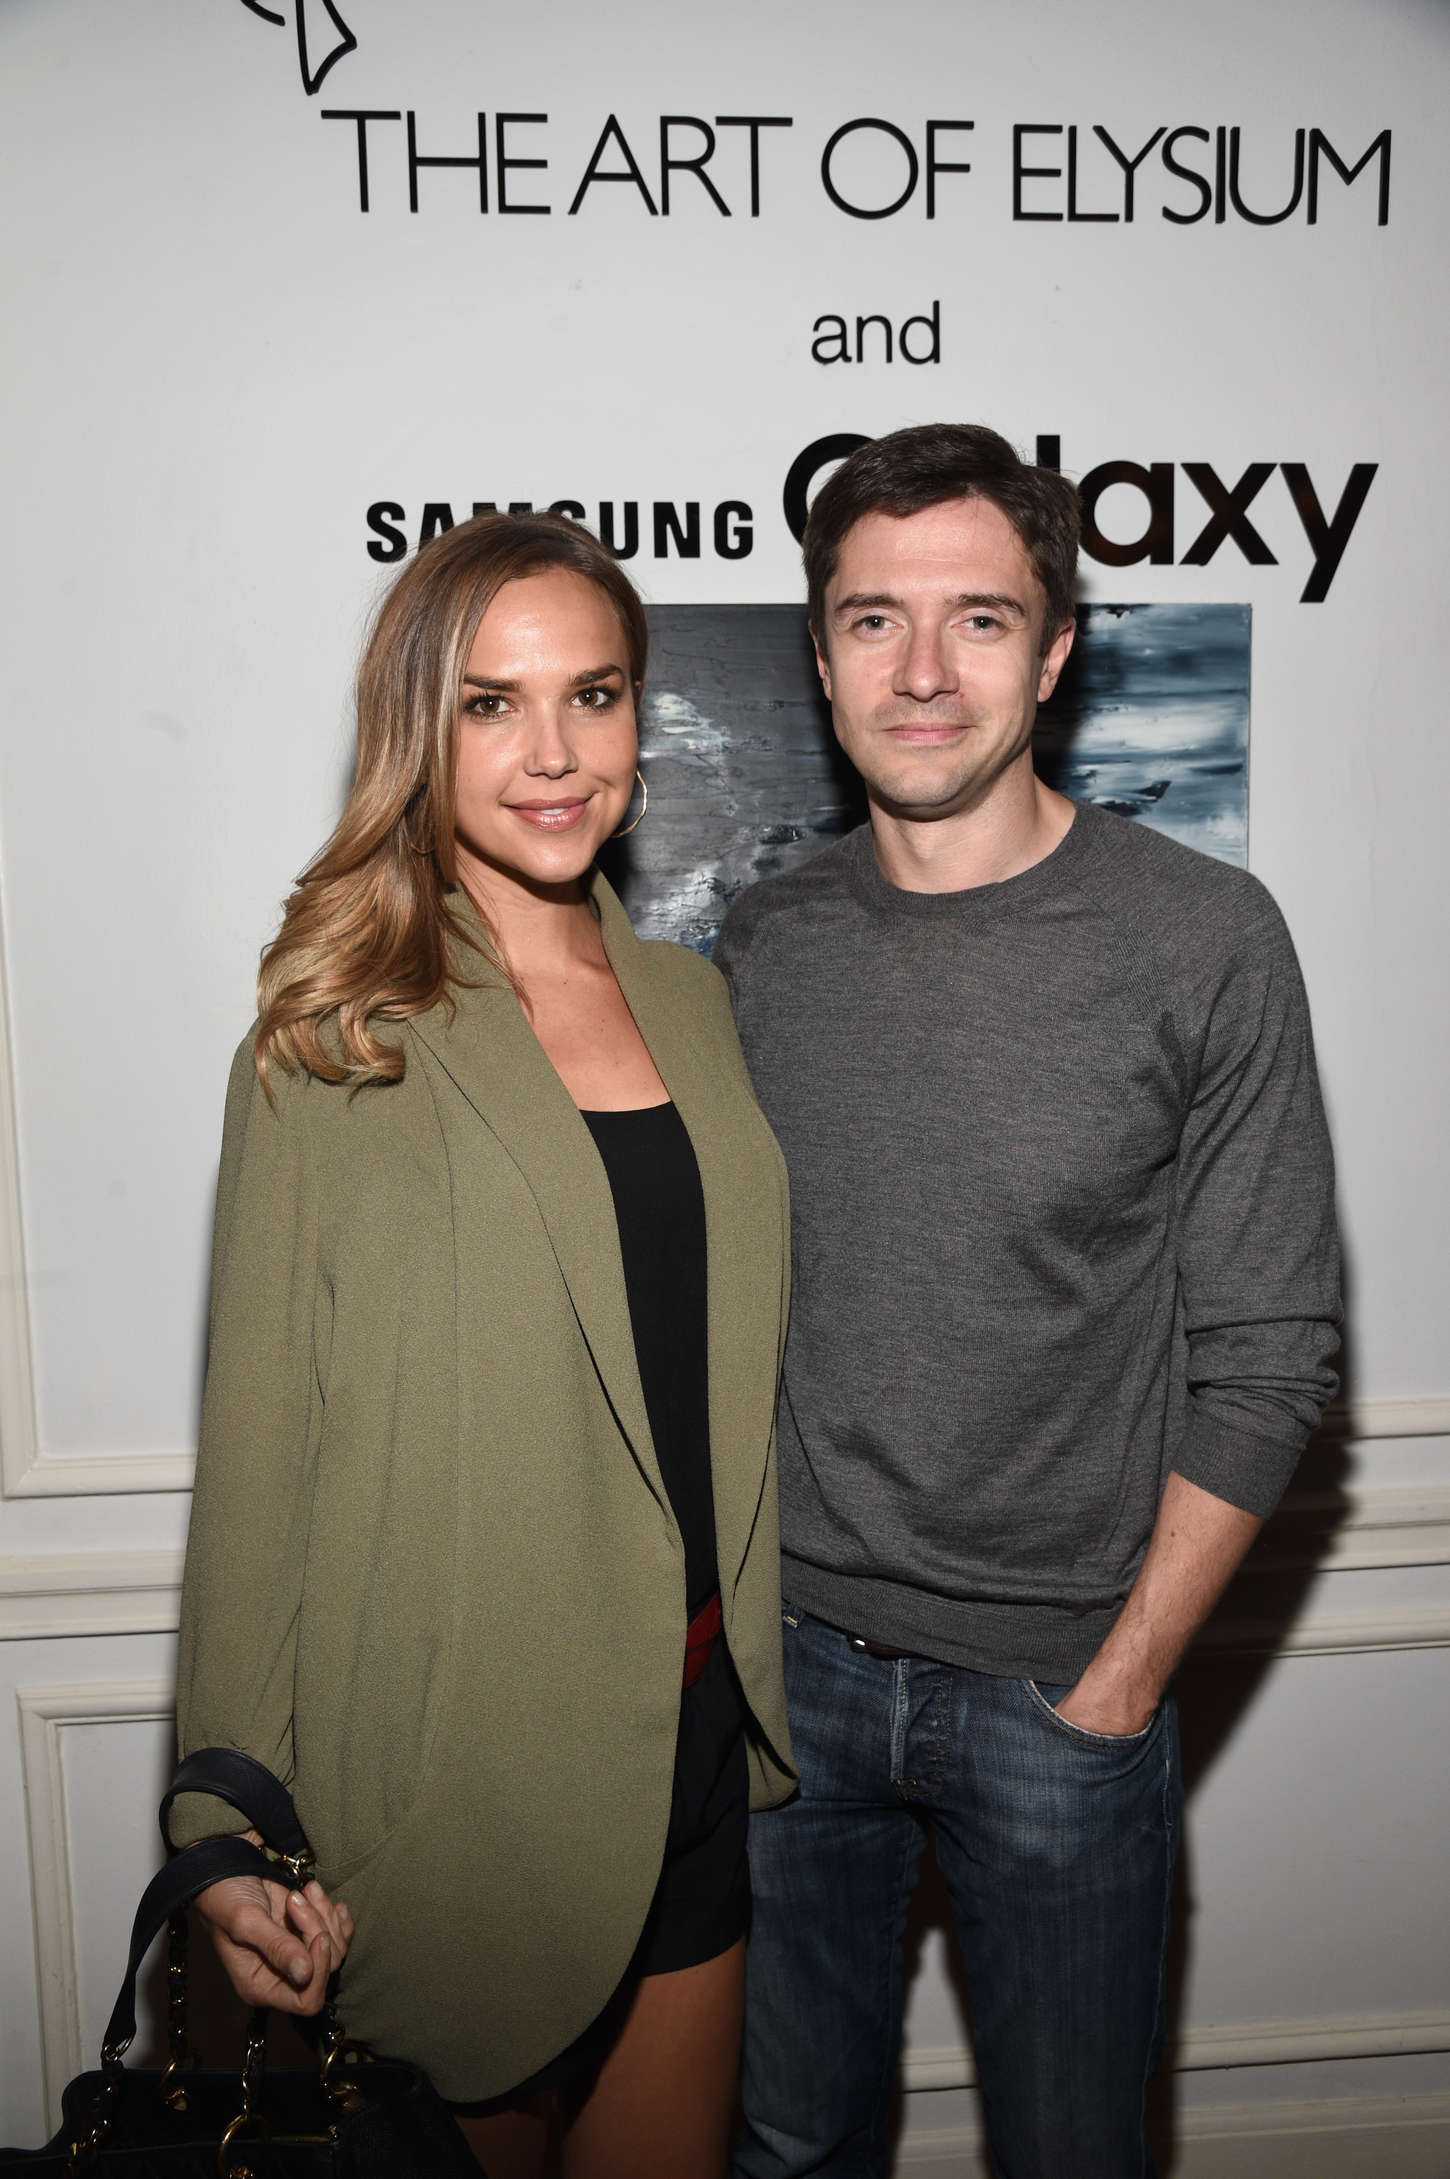 Arielle Kebbel An Introduction To HEAVEN Event in Los Angeles